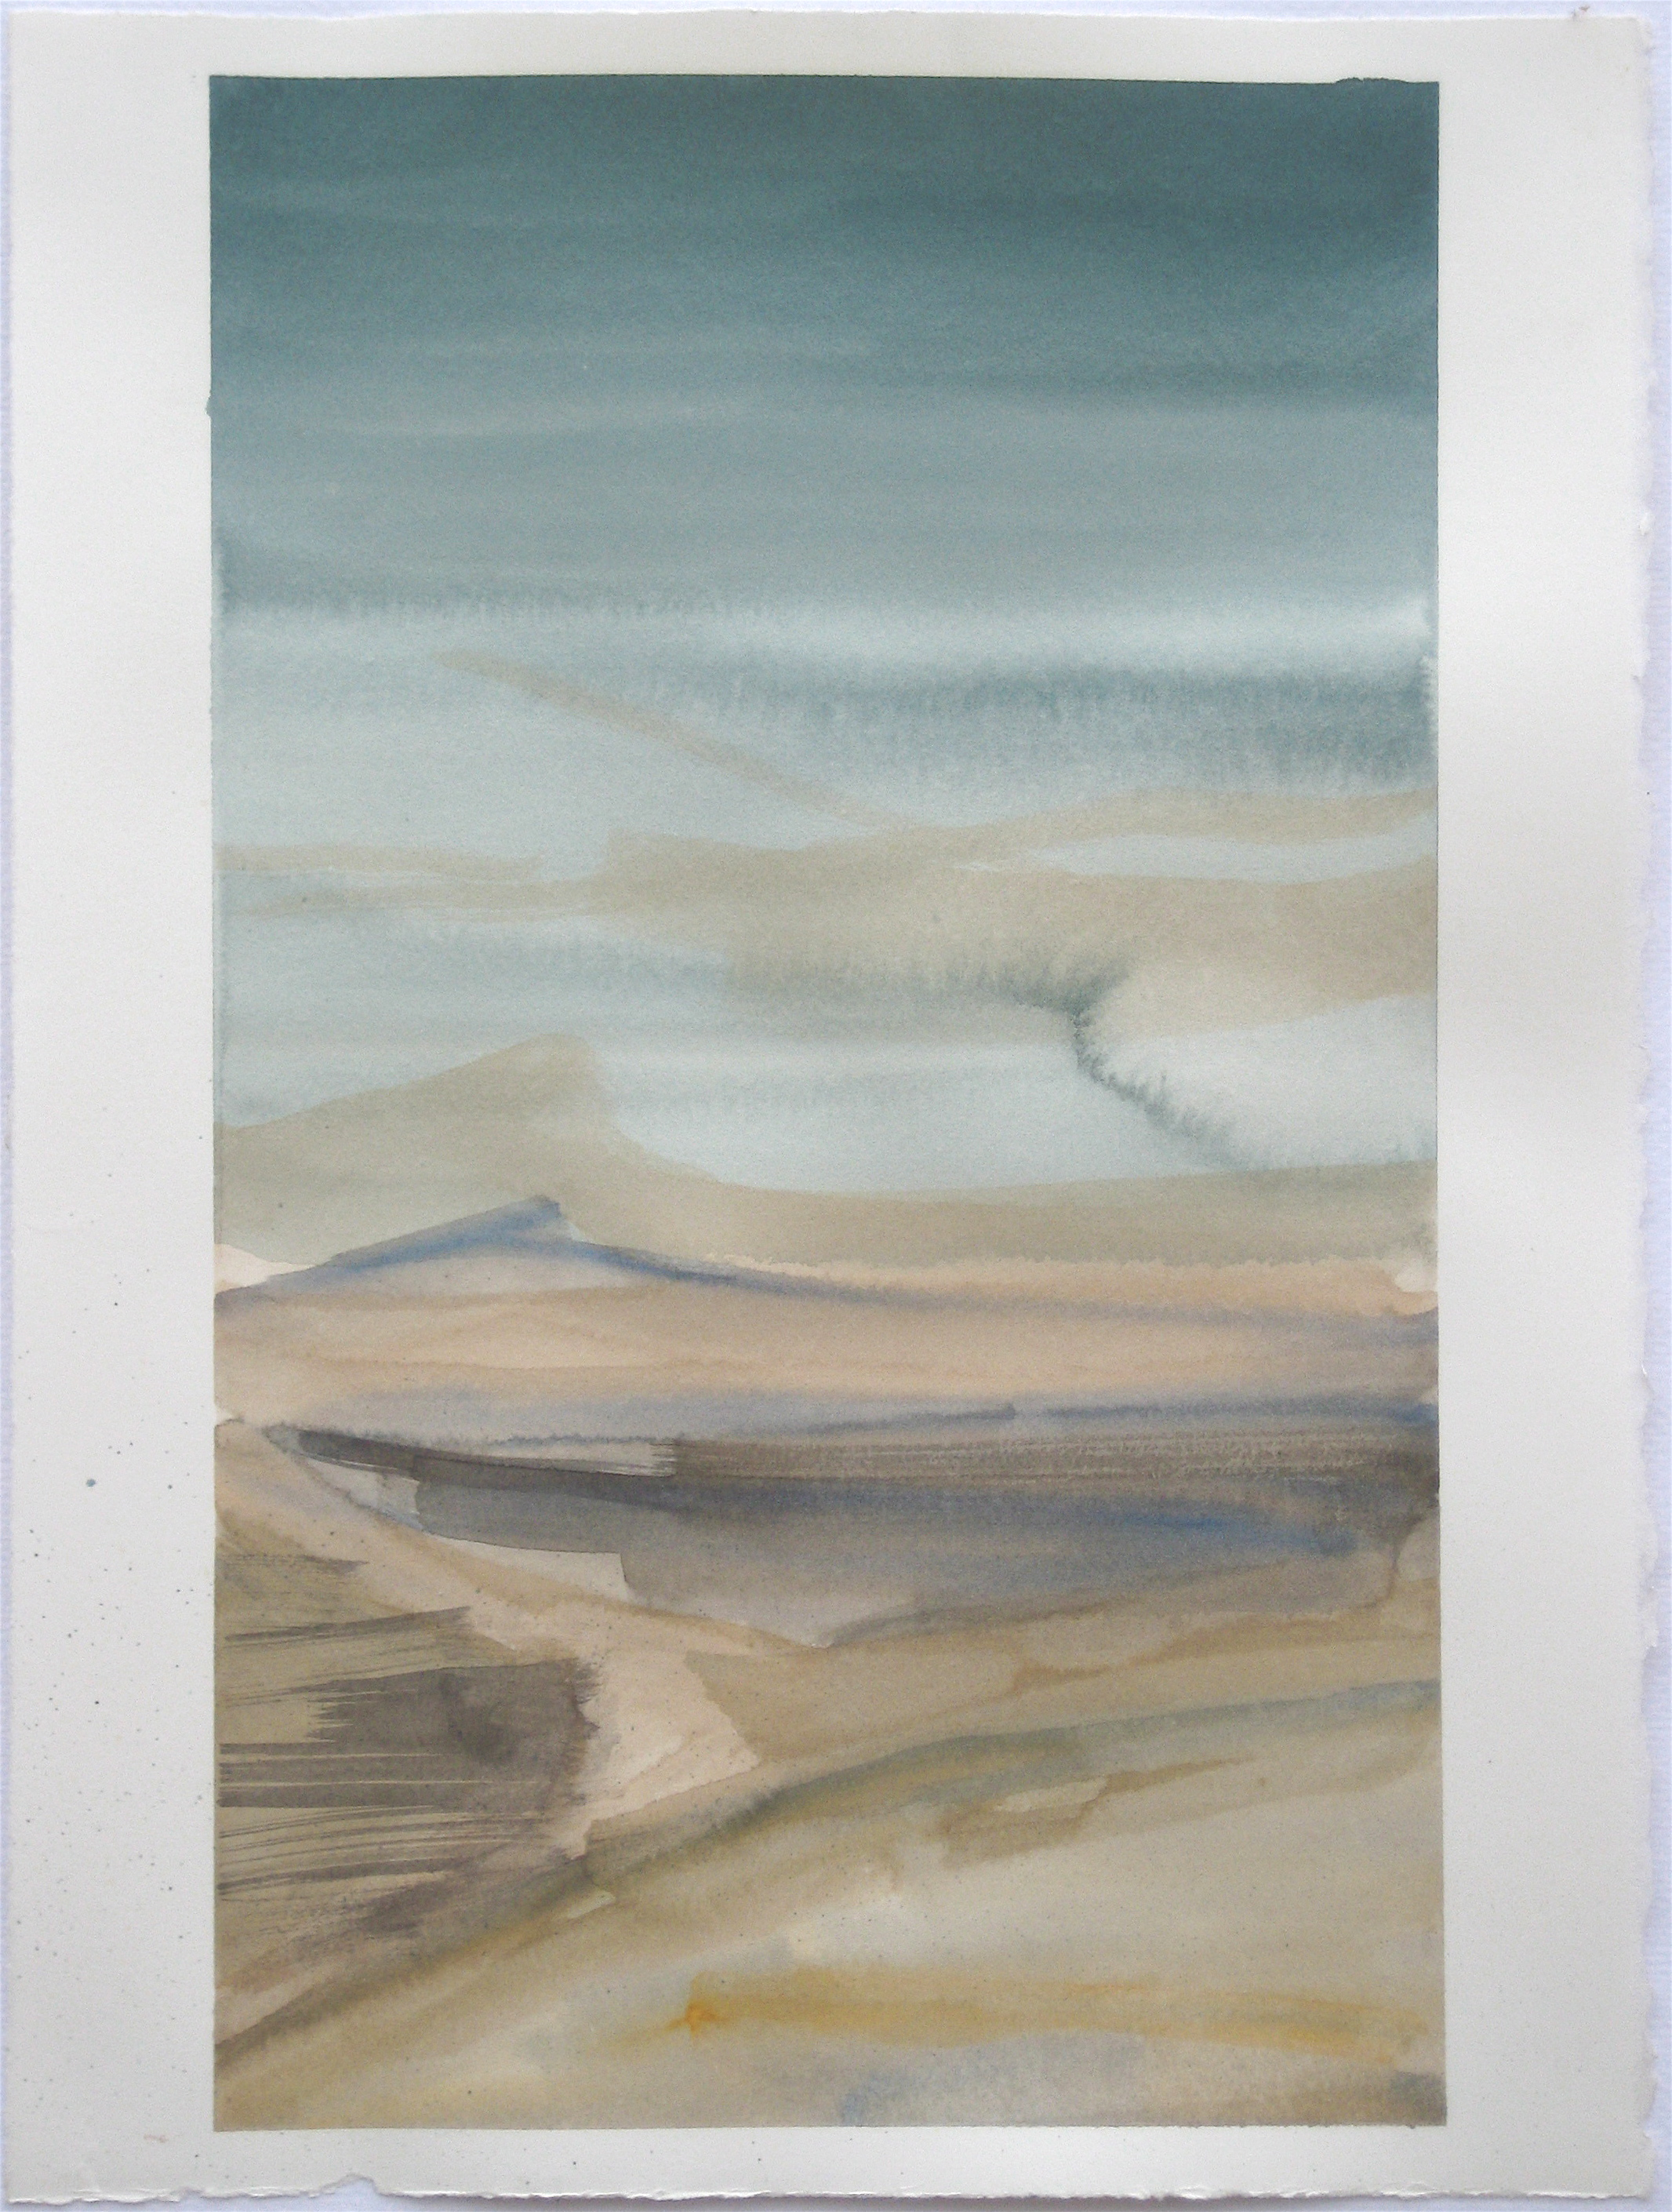 """Sky #3.4/2007, 2007, watercolor on paper paper: 15 1/4""""x11 1/4""""; image 14 1/2""""x8 1/2"""""""